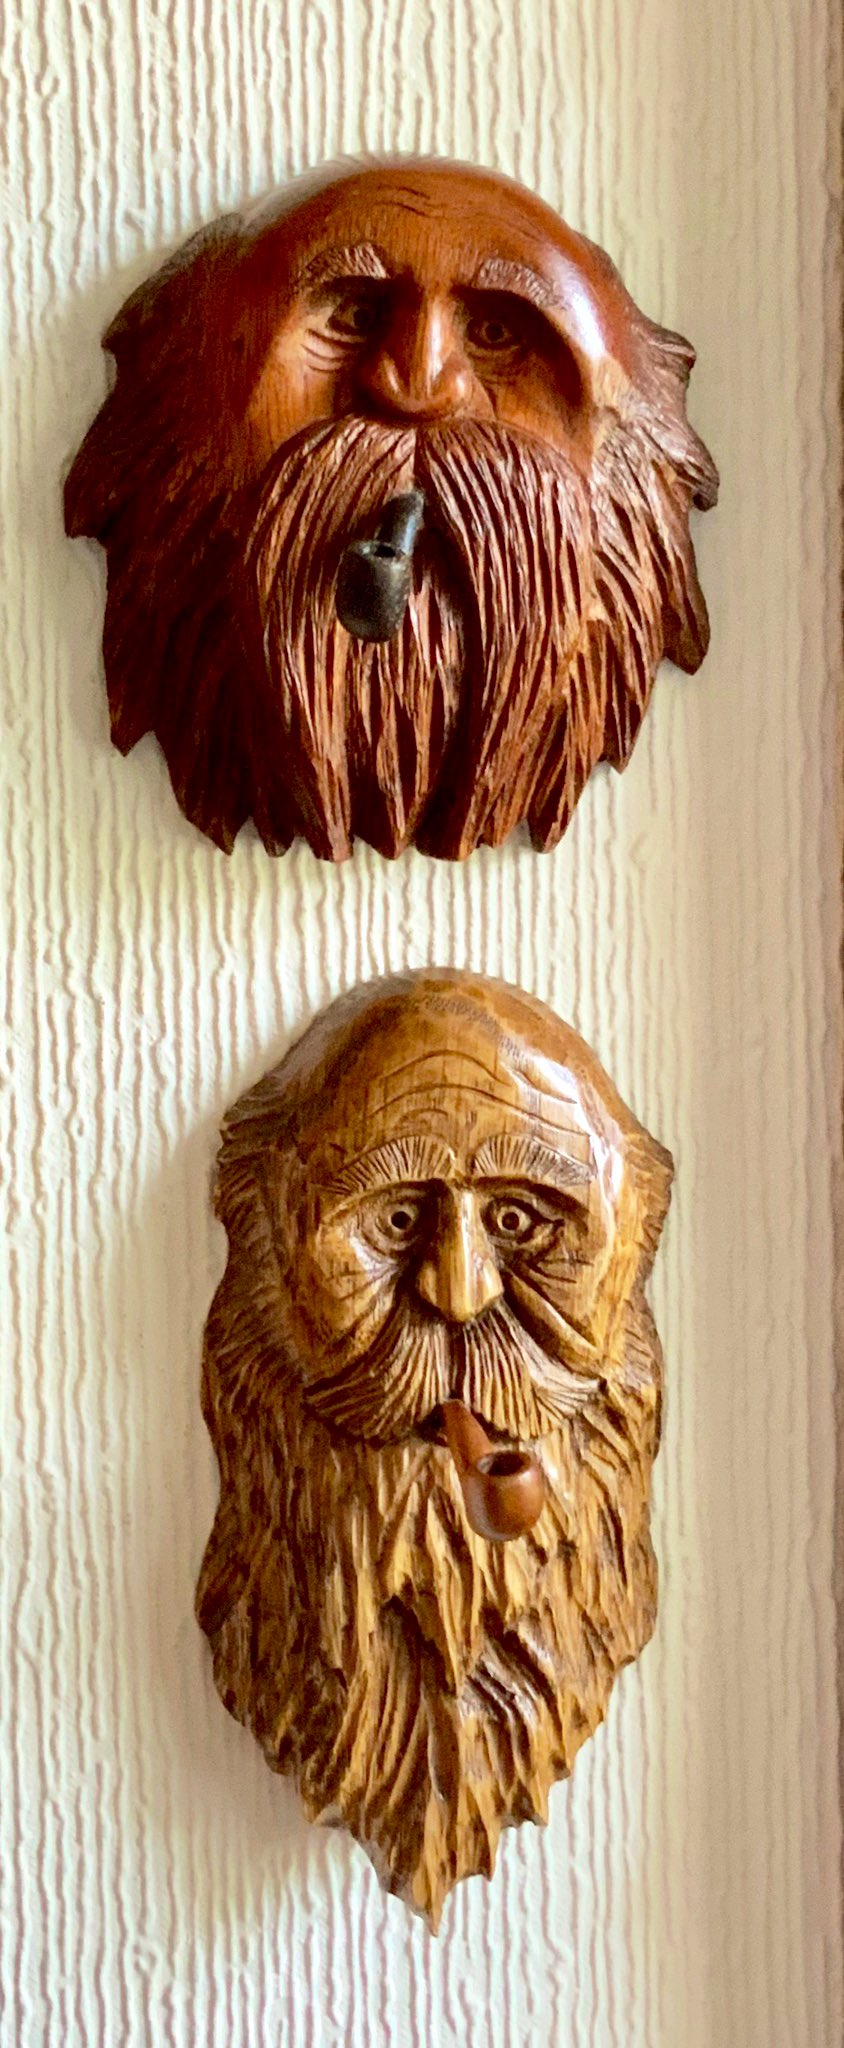 Two old guys with a bad habit top one mahogany the other oak https://t.co/tqcC8X3HHY